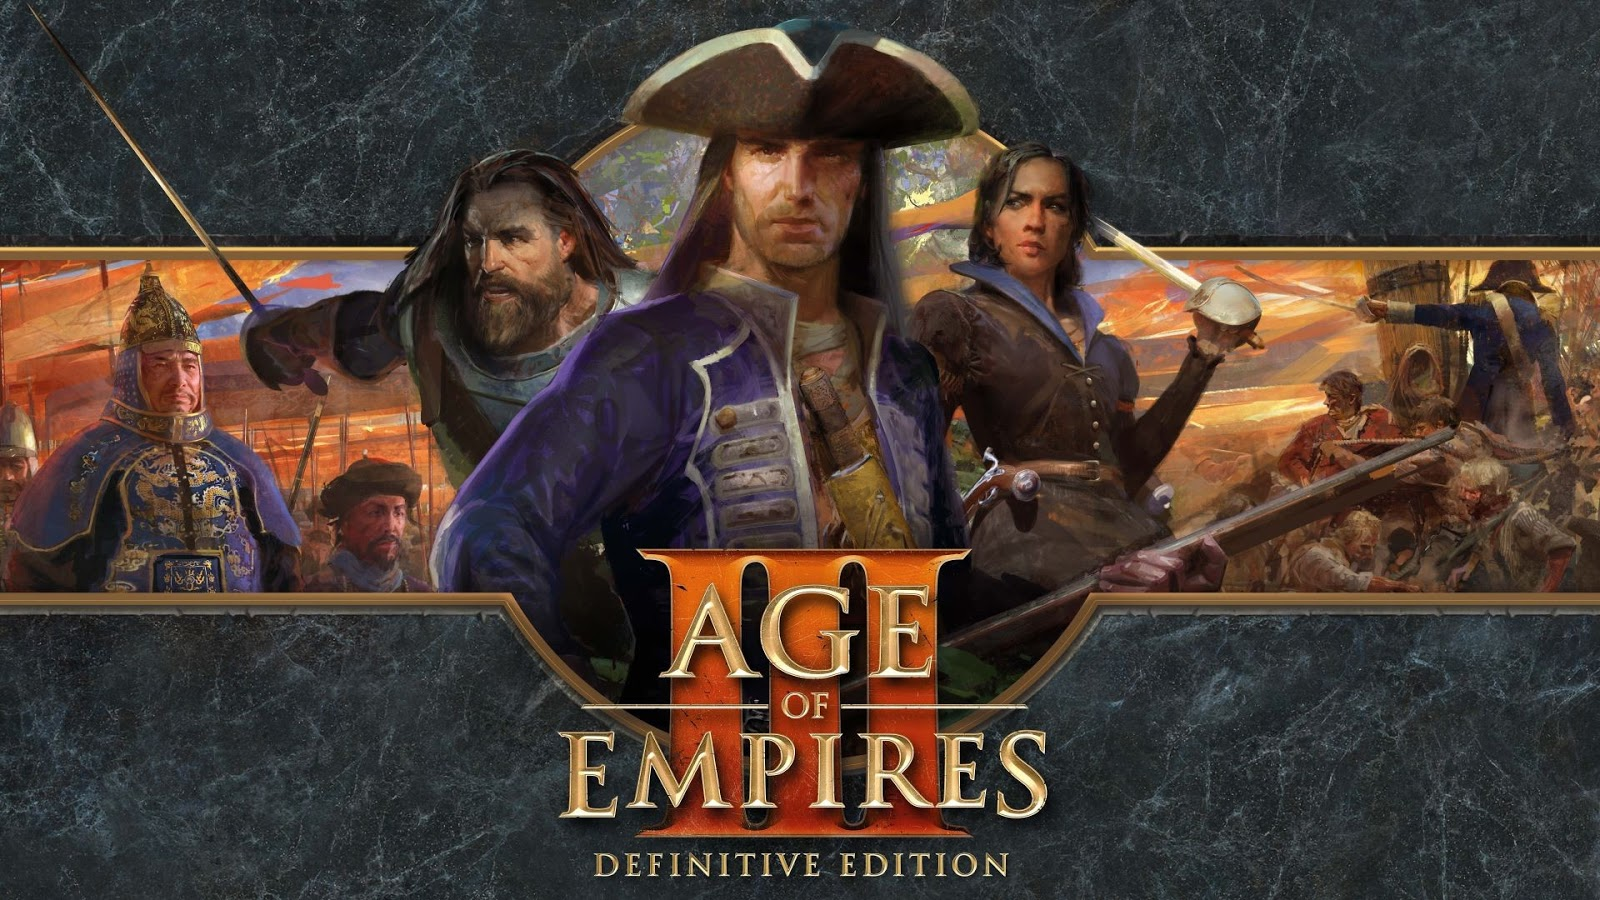 مراجعة Age of Empires III: Definitive Edition.